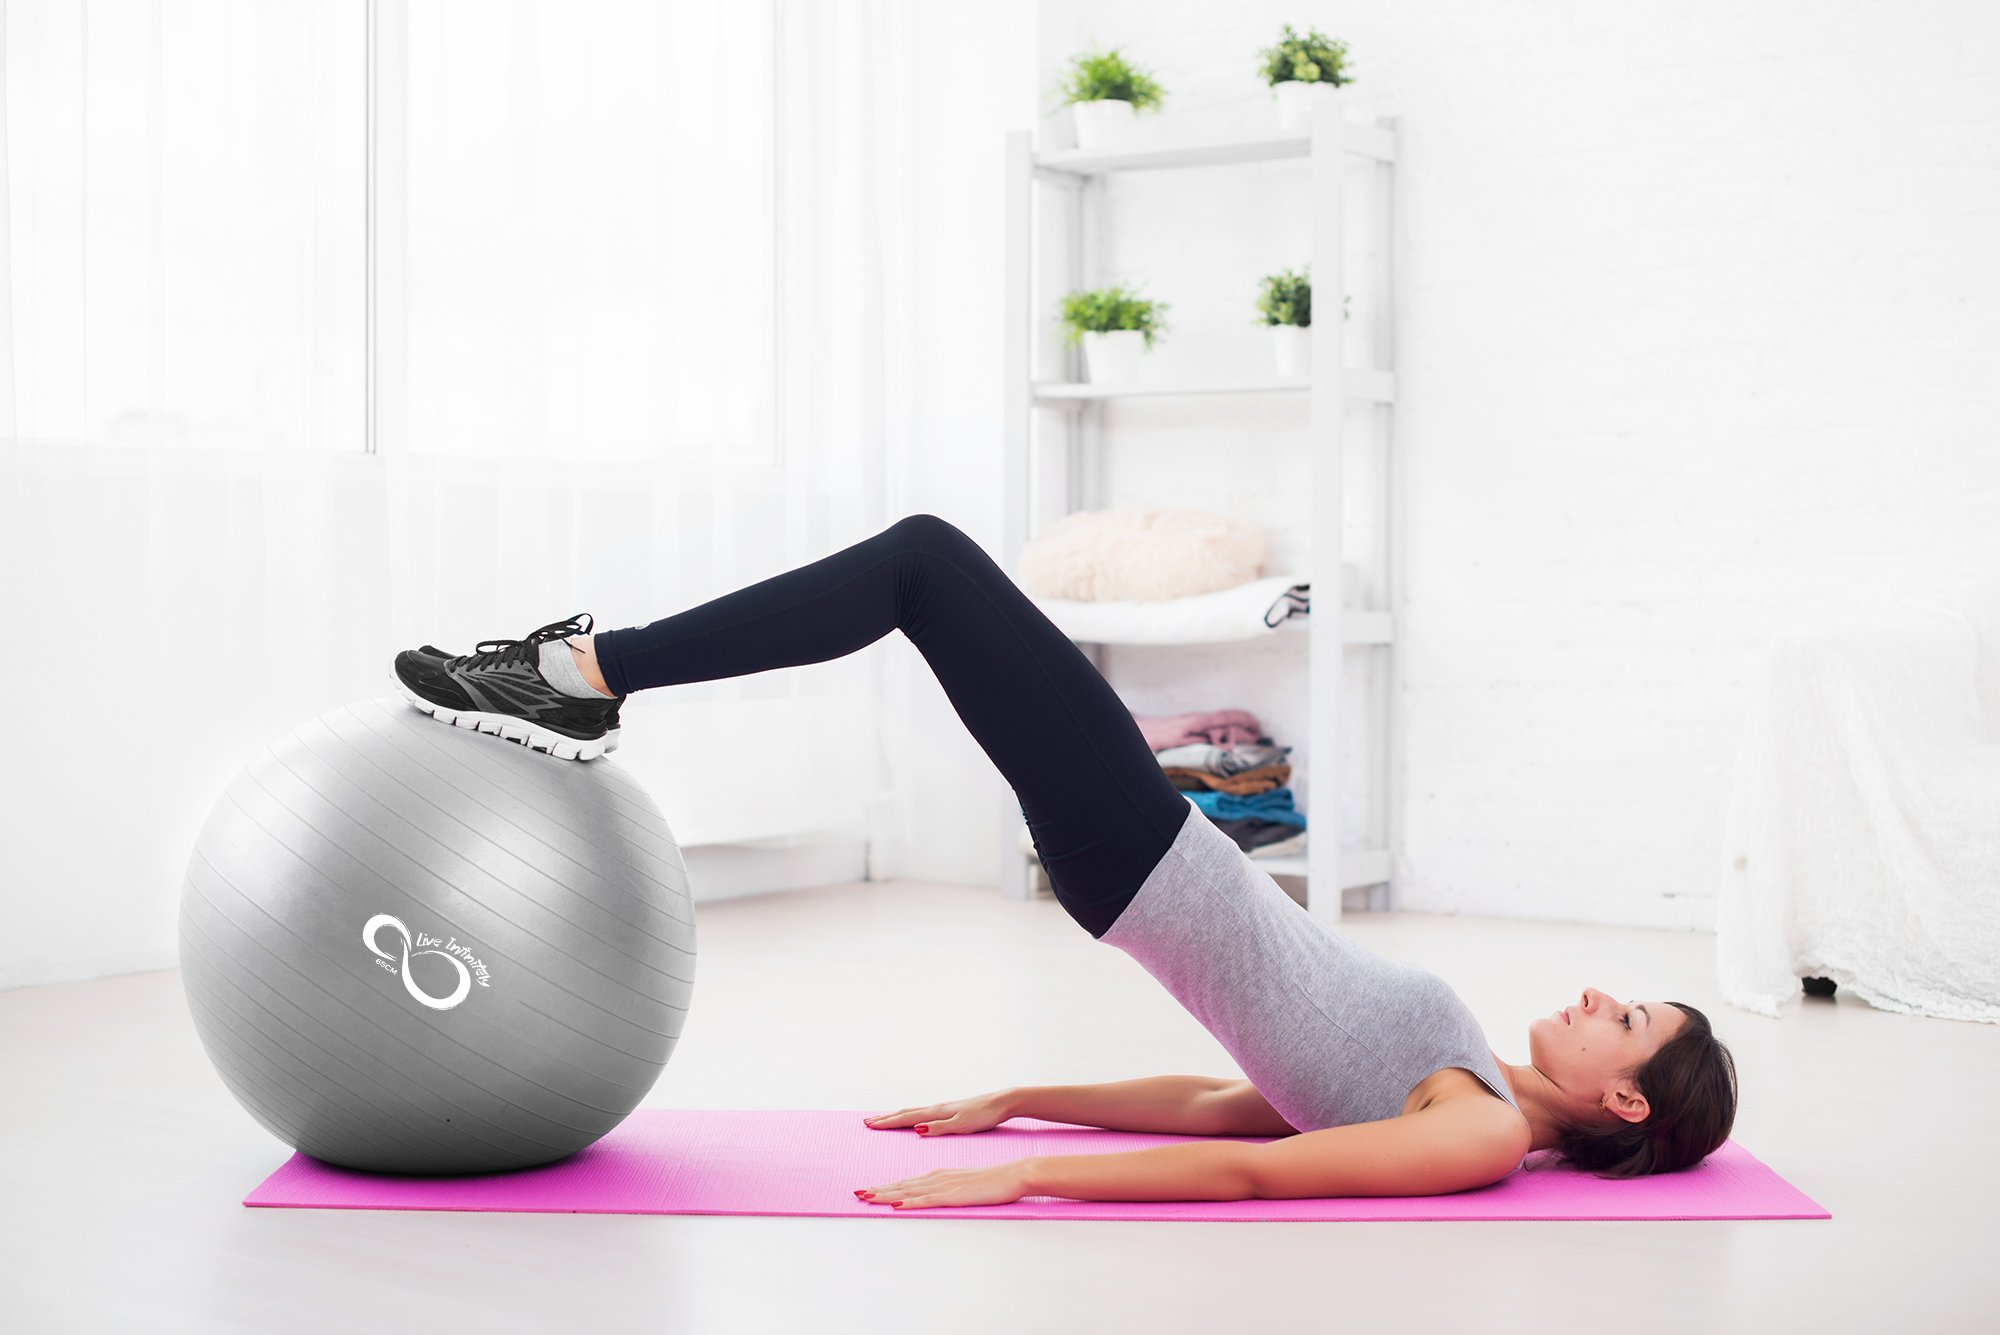 Live Infinitely Exercise Ball (55cm-95cm) Extra Thick Professional Grade Balance & Stability Ball- Anti Burst Tested Supports 2200lbs- Includes Hand Pump & Workout Guide Access Silver 55cm by Live Infinitely (Image #5)